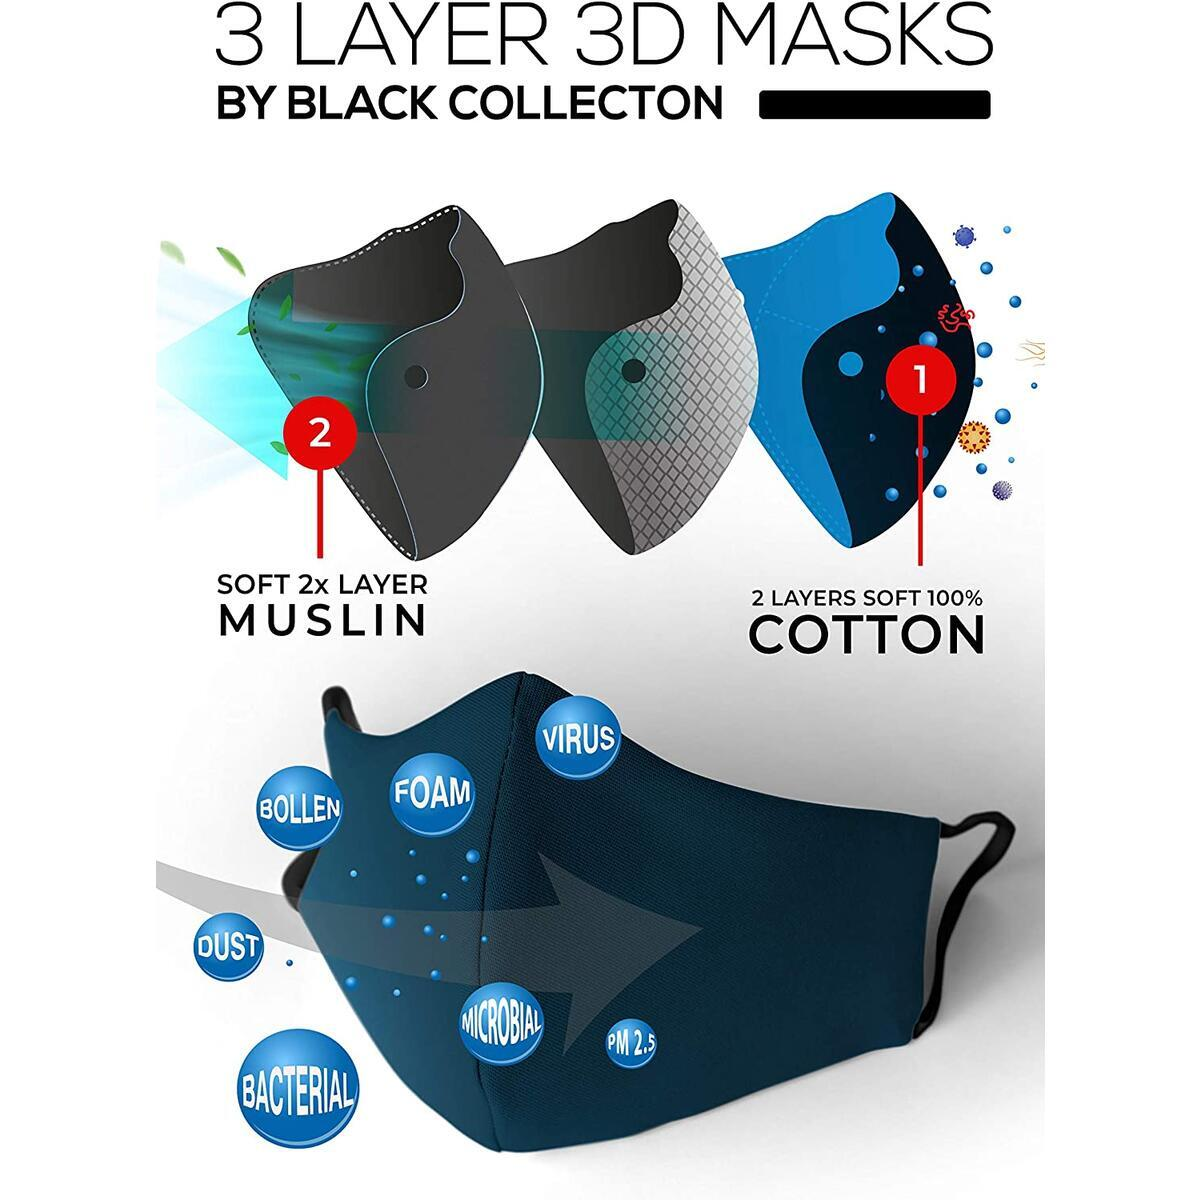 3x Layer Cotton Muslin Navy Blue Face Cover (Pack of 2) Nose & Mouth Covers with Extra Padding Slot, Super Soft Comfortable Wear for Daily Use 1 Size Fit Most Adult Men & Women One Size Fits All (SML)